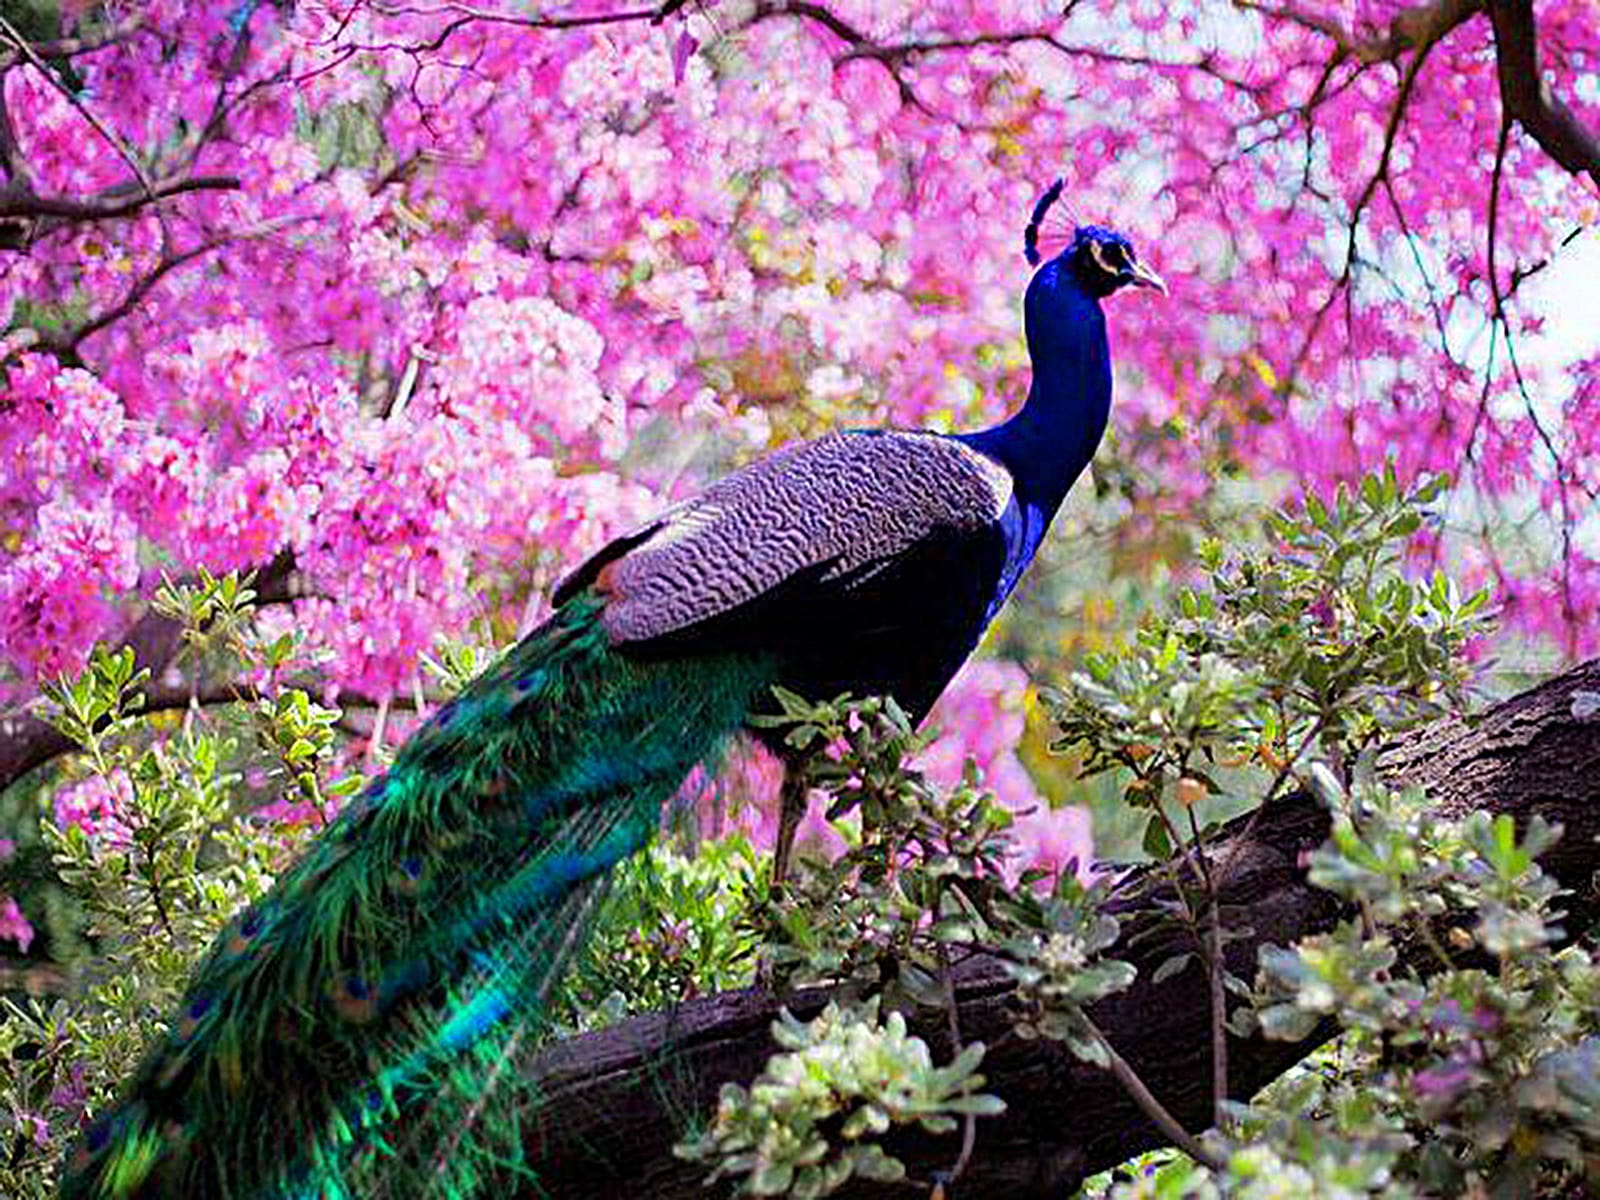 Peacock Hd Wallpapers  7Wallpapersnet-8714